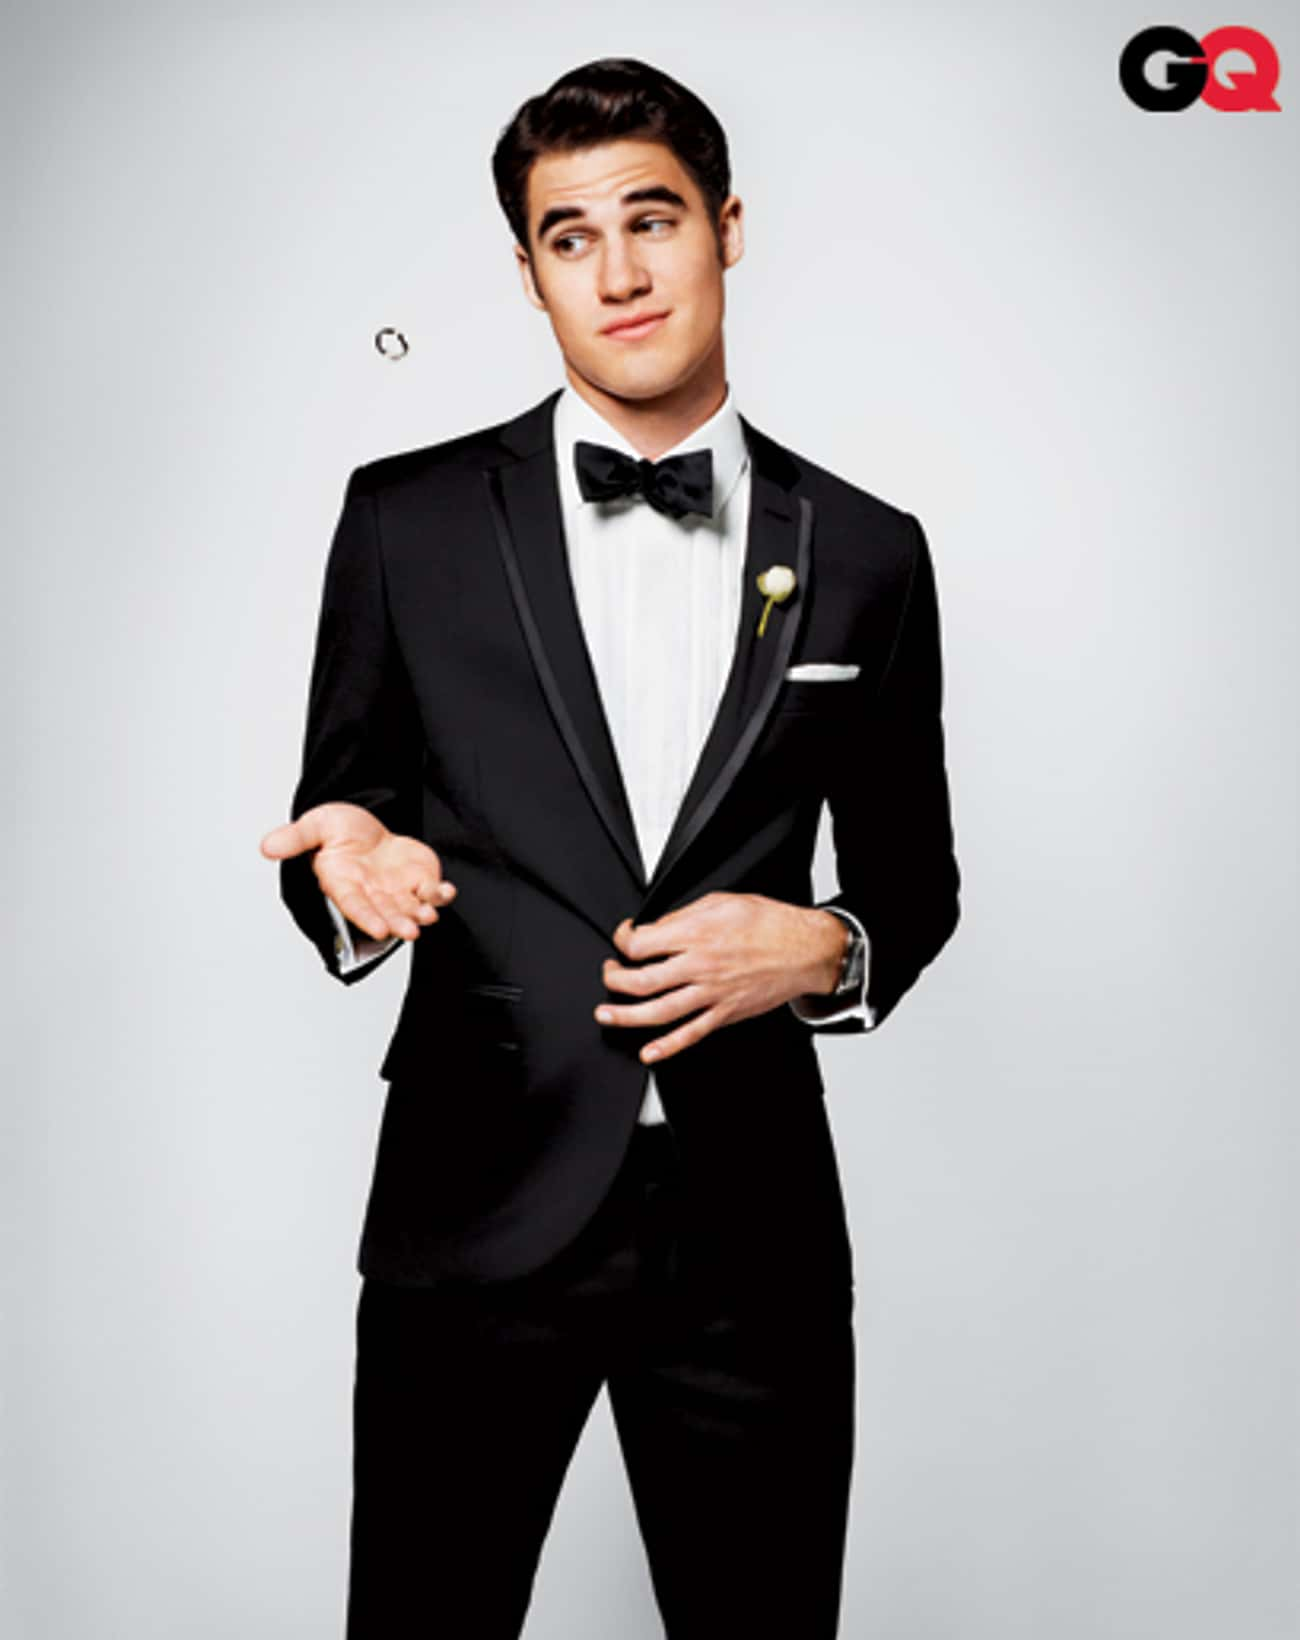 Darren Criss in Slim Fit Tuxed is listed (or ranked) 3 on the list Hot Darren Criss Photos